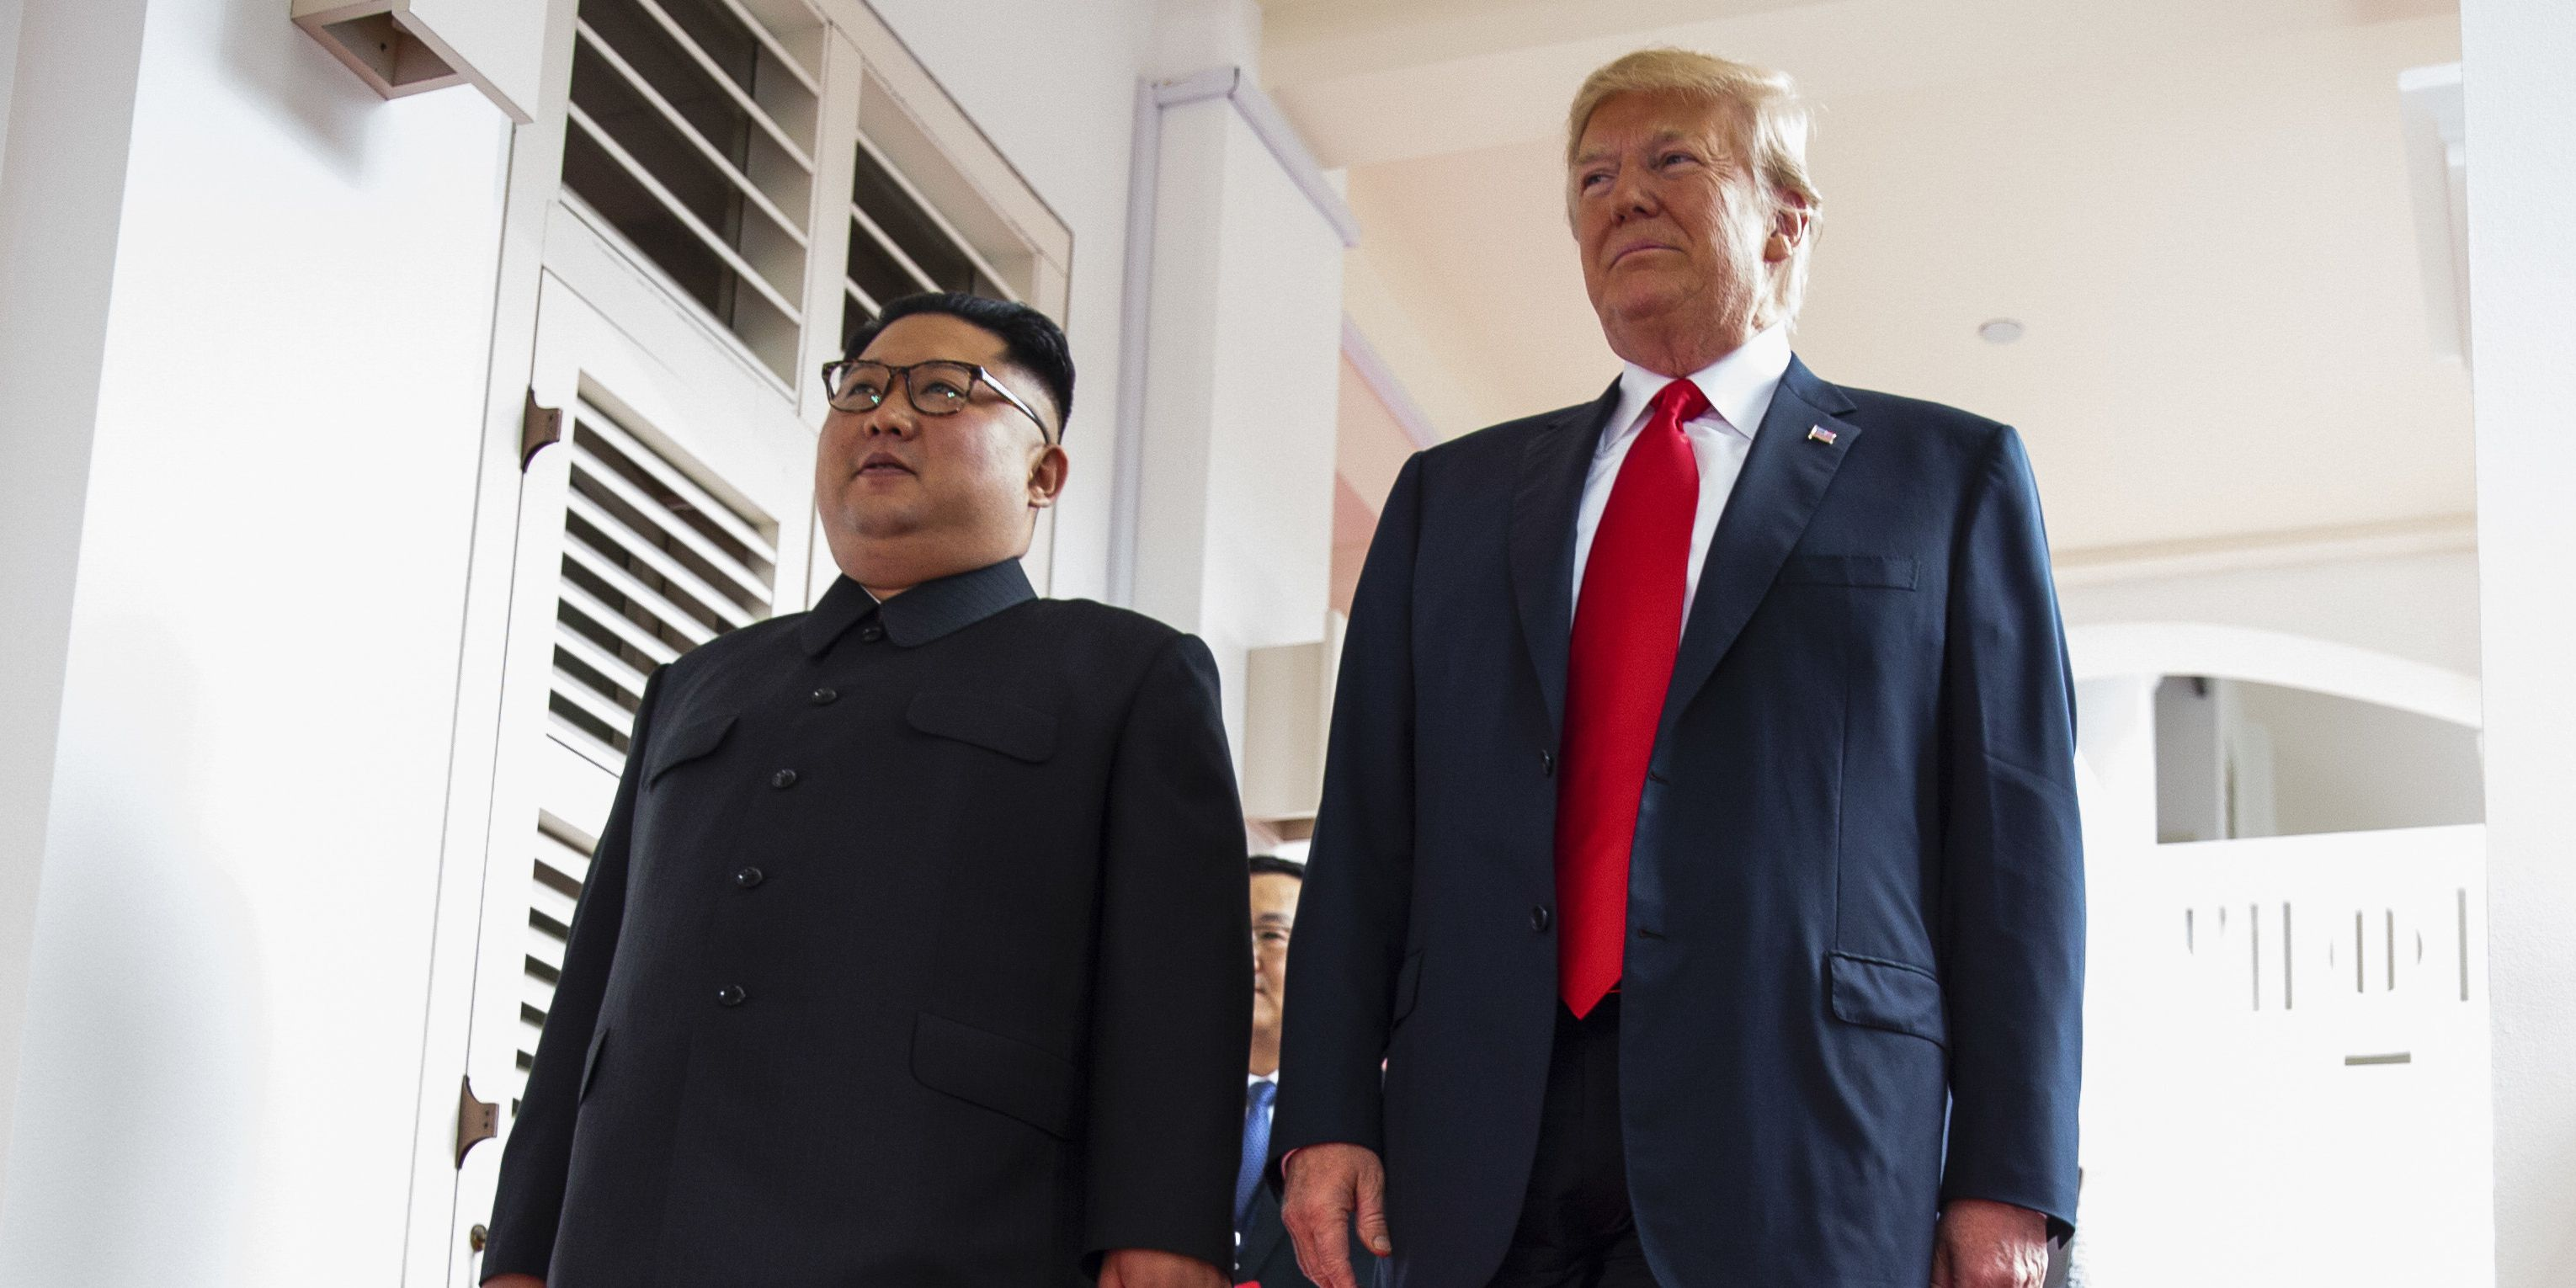 Trump manages expectations as he heads to Vietnam for second Kim summit